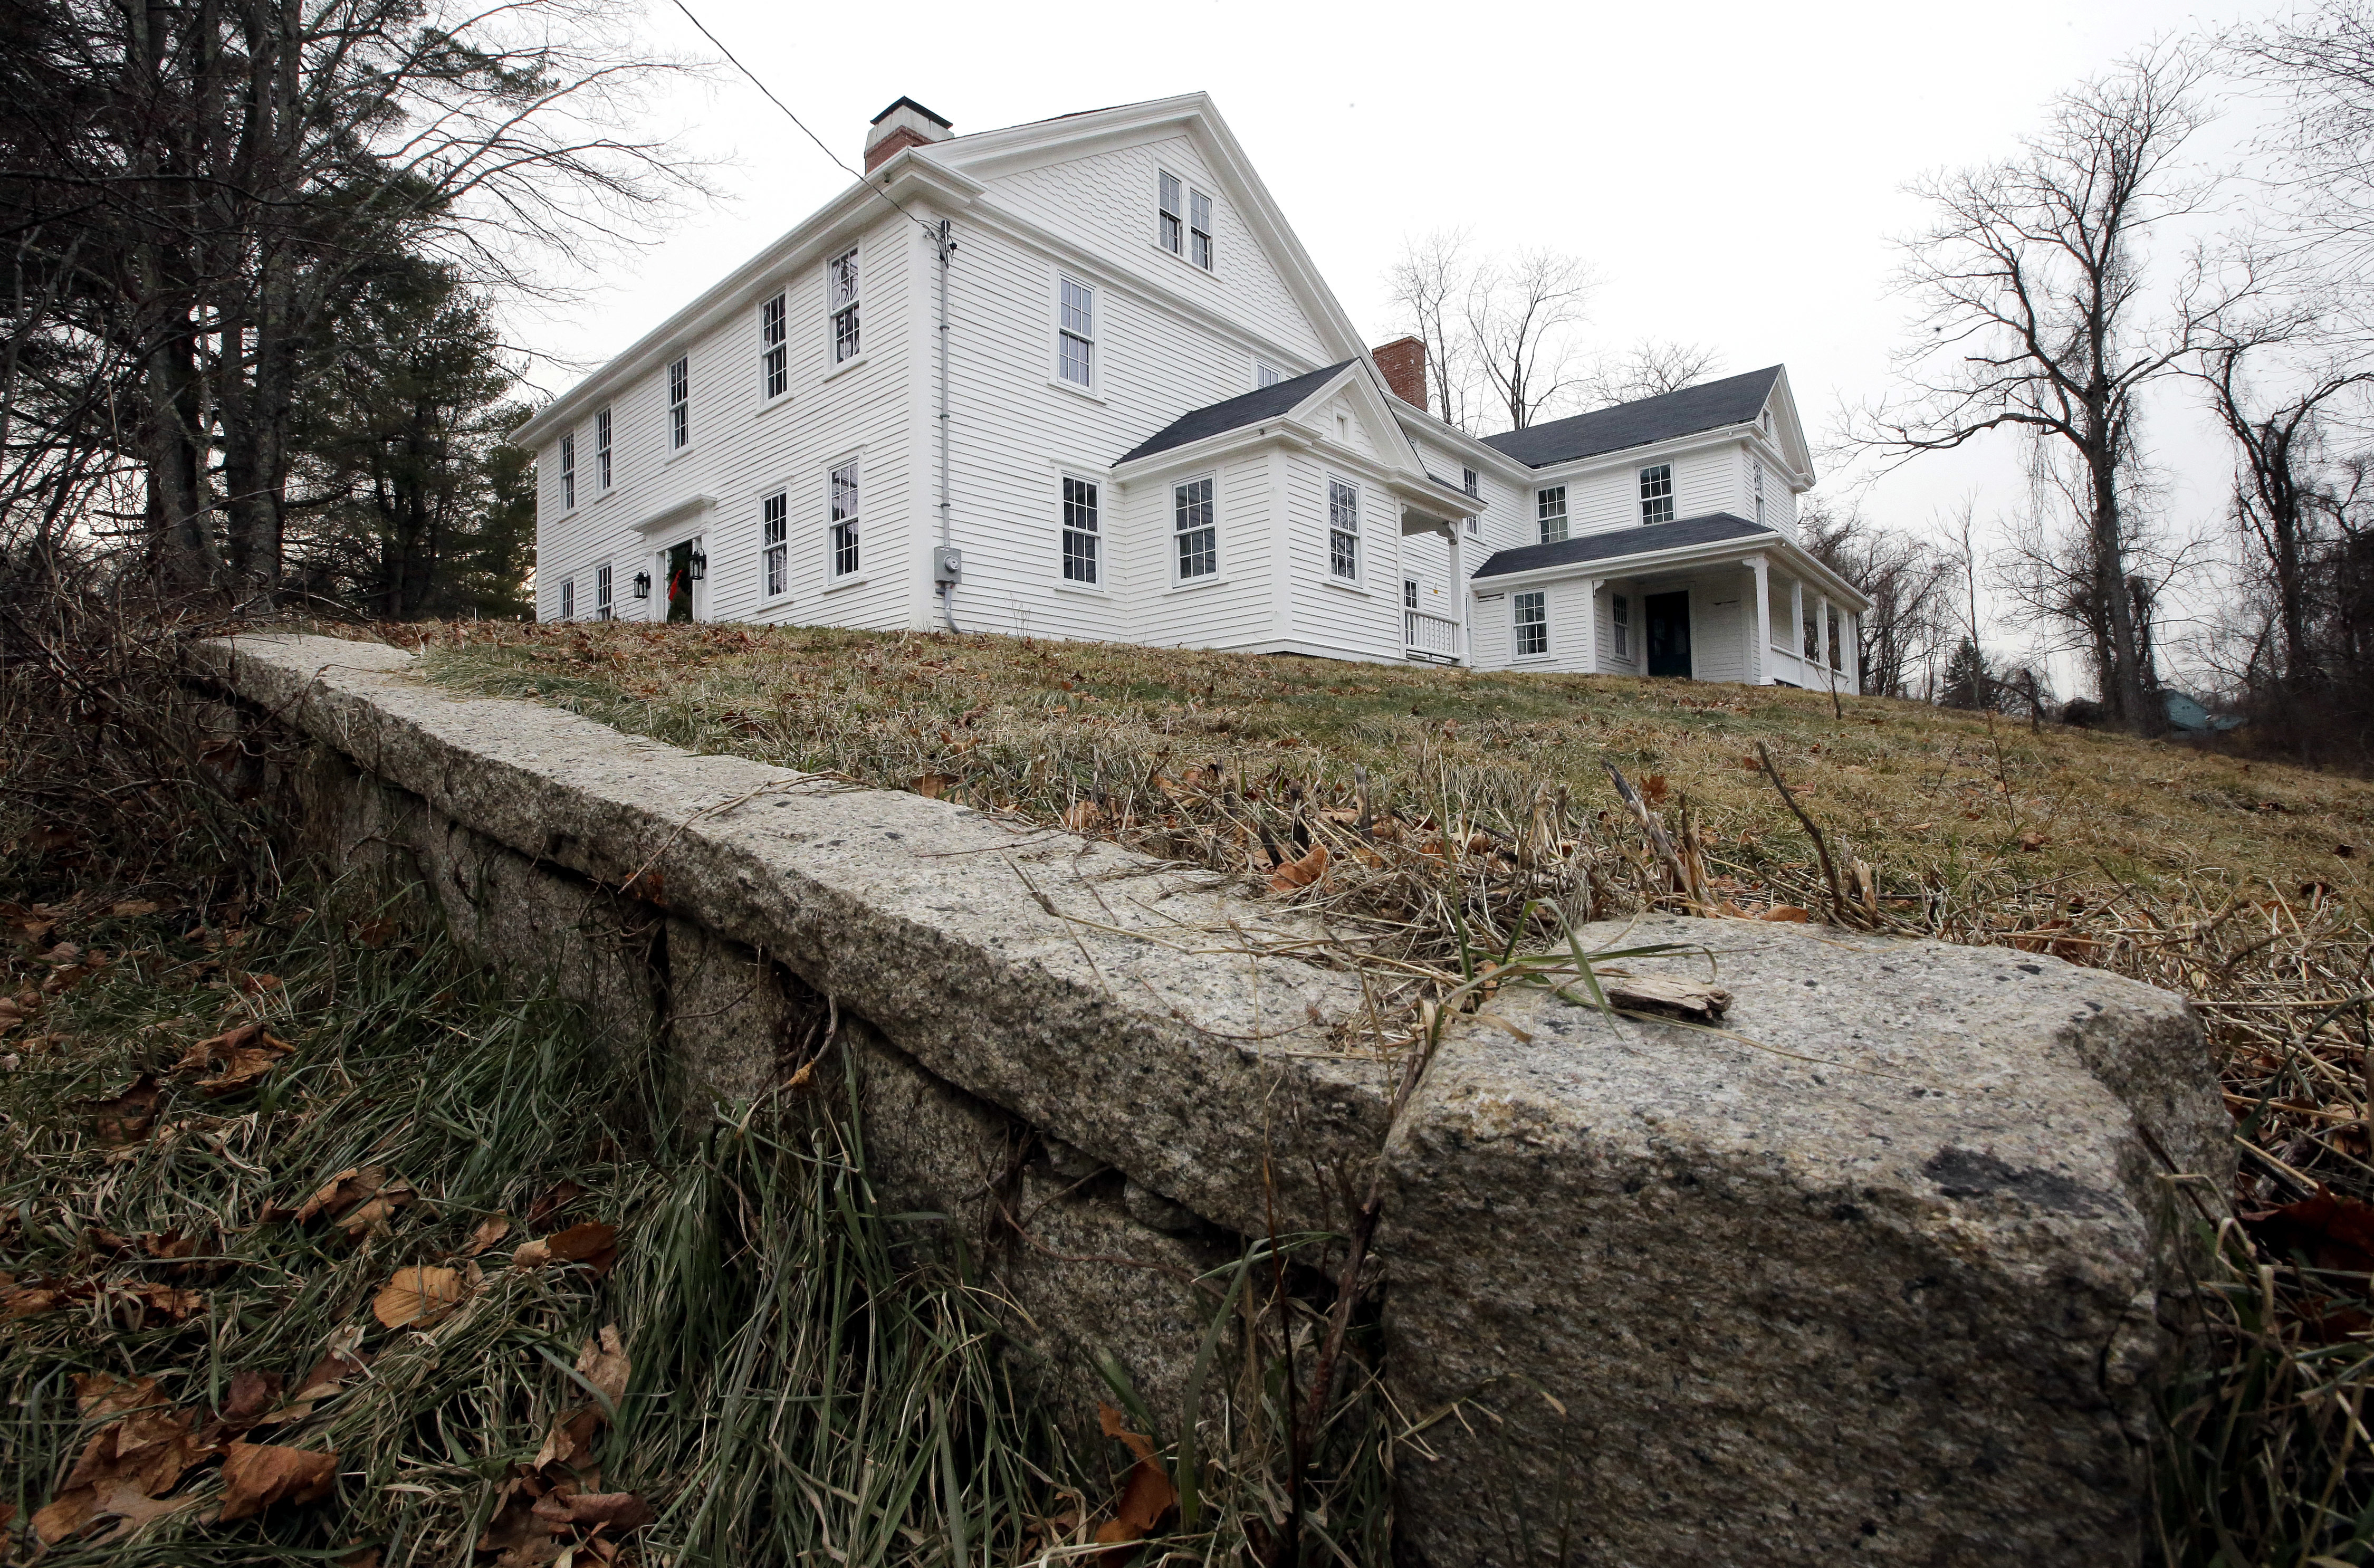 For Sale: $975K Home of Accused Salem 'Witch'